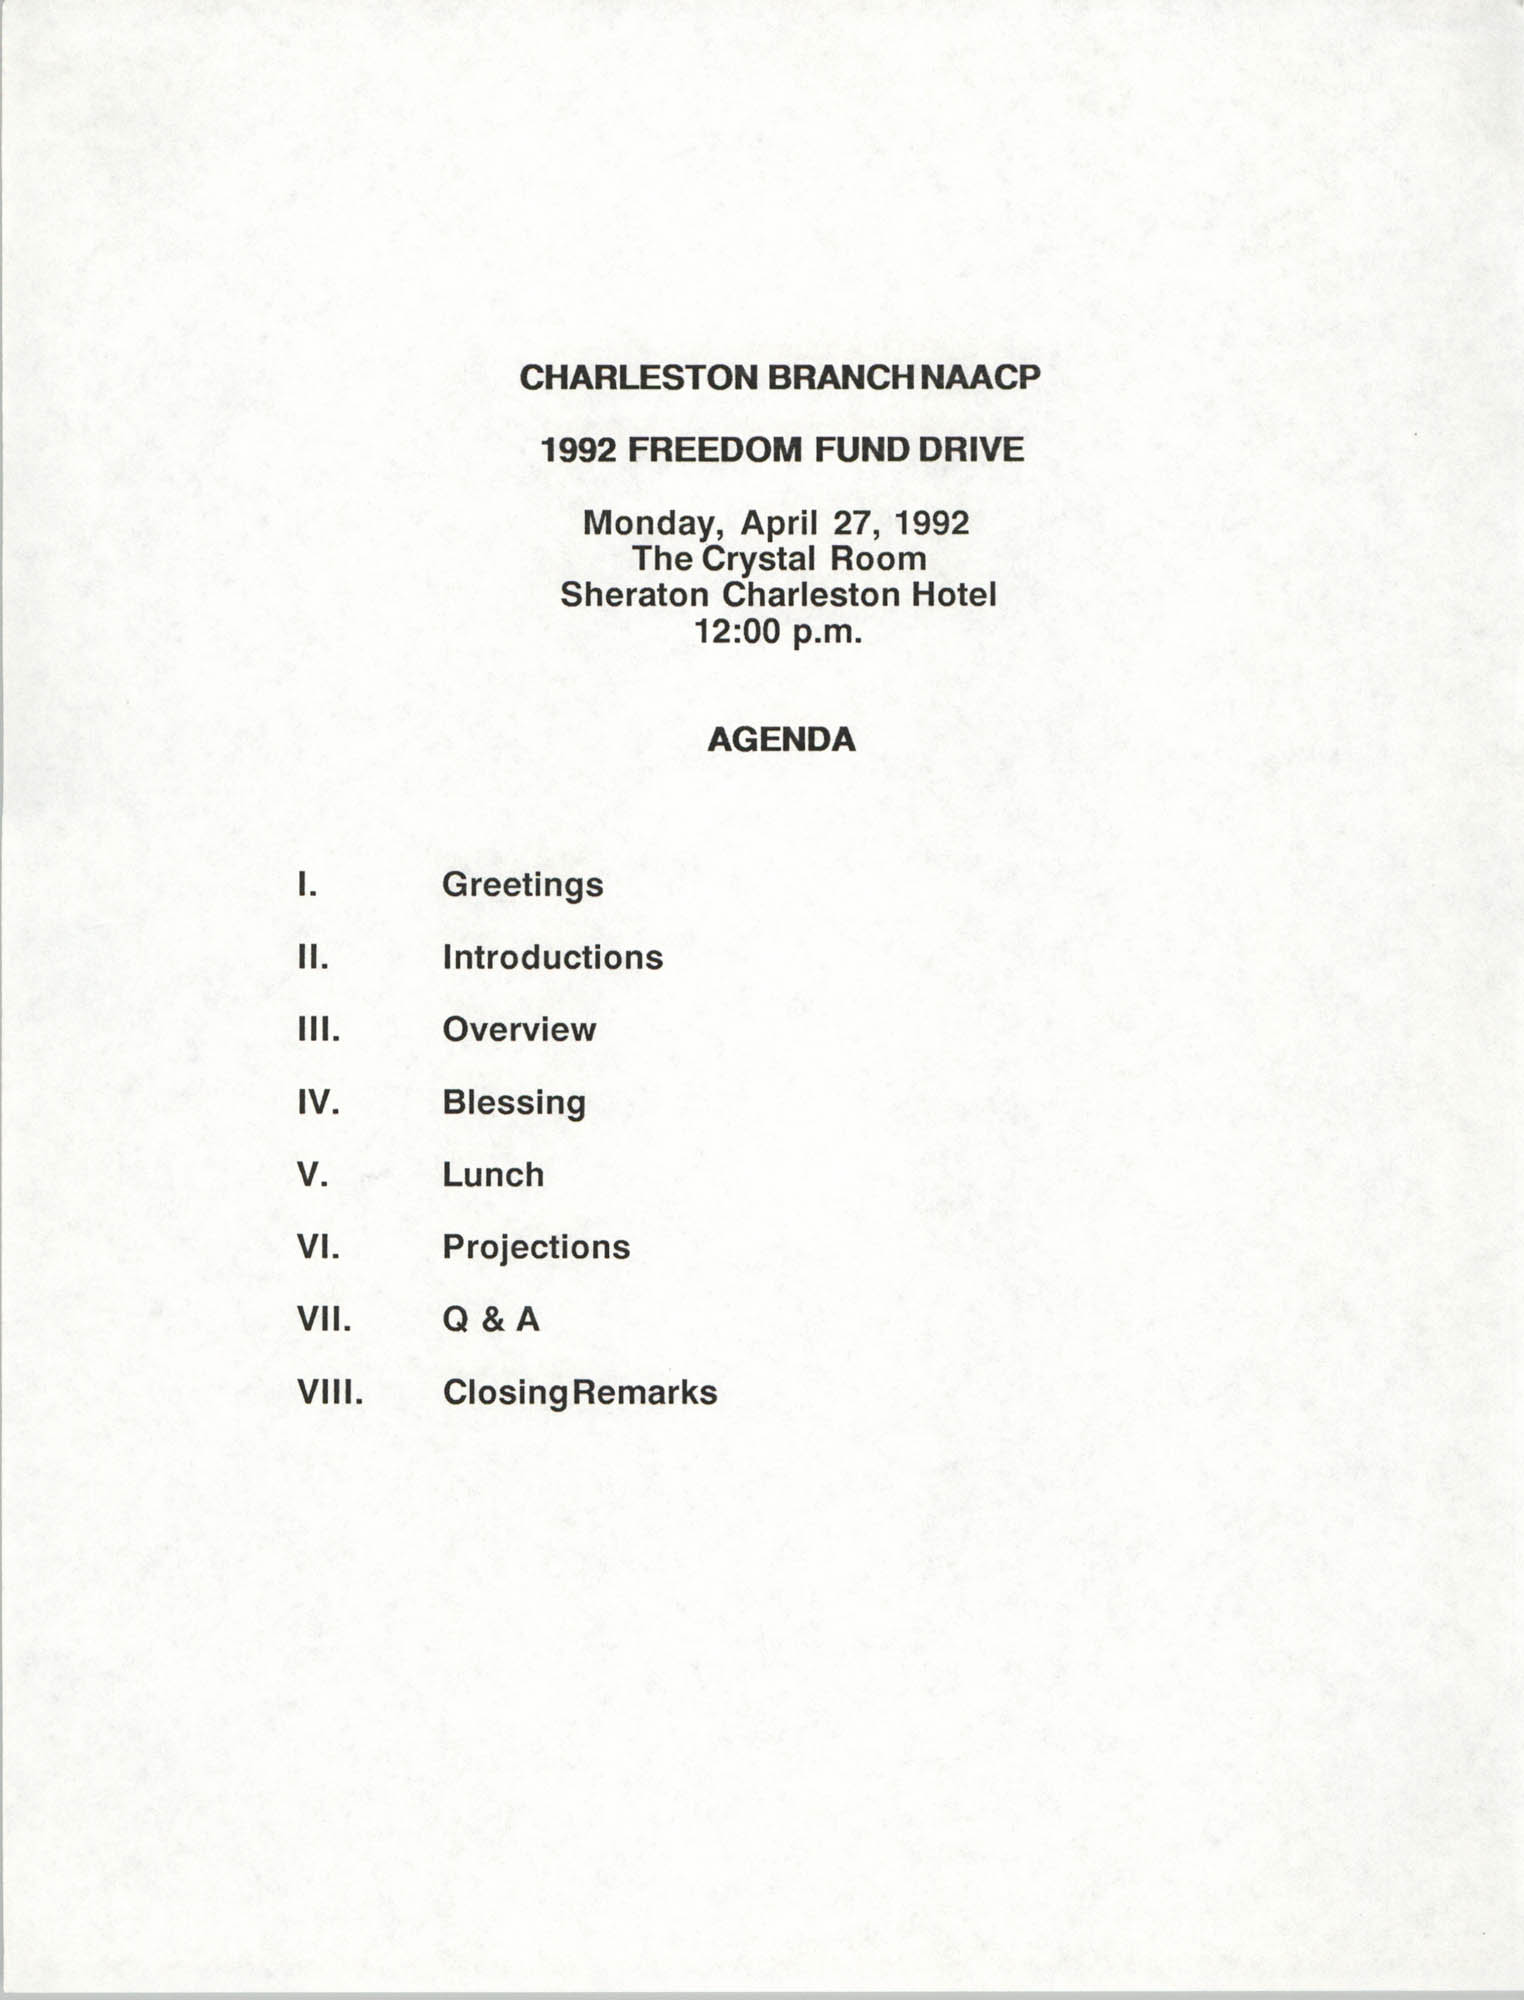 Charleston Branch NAACP 1992 Freedom Fund Drive Meeting Agenda